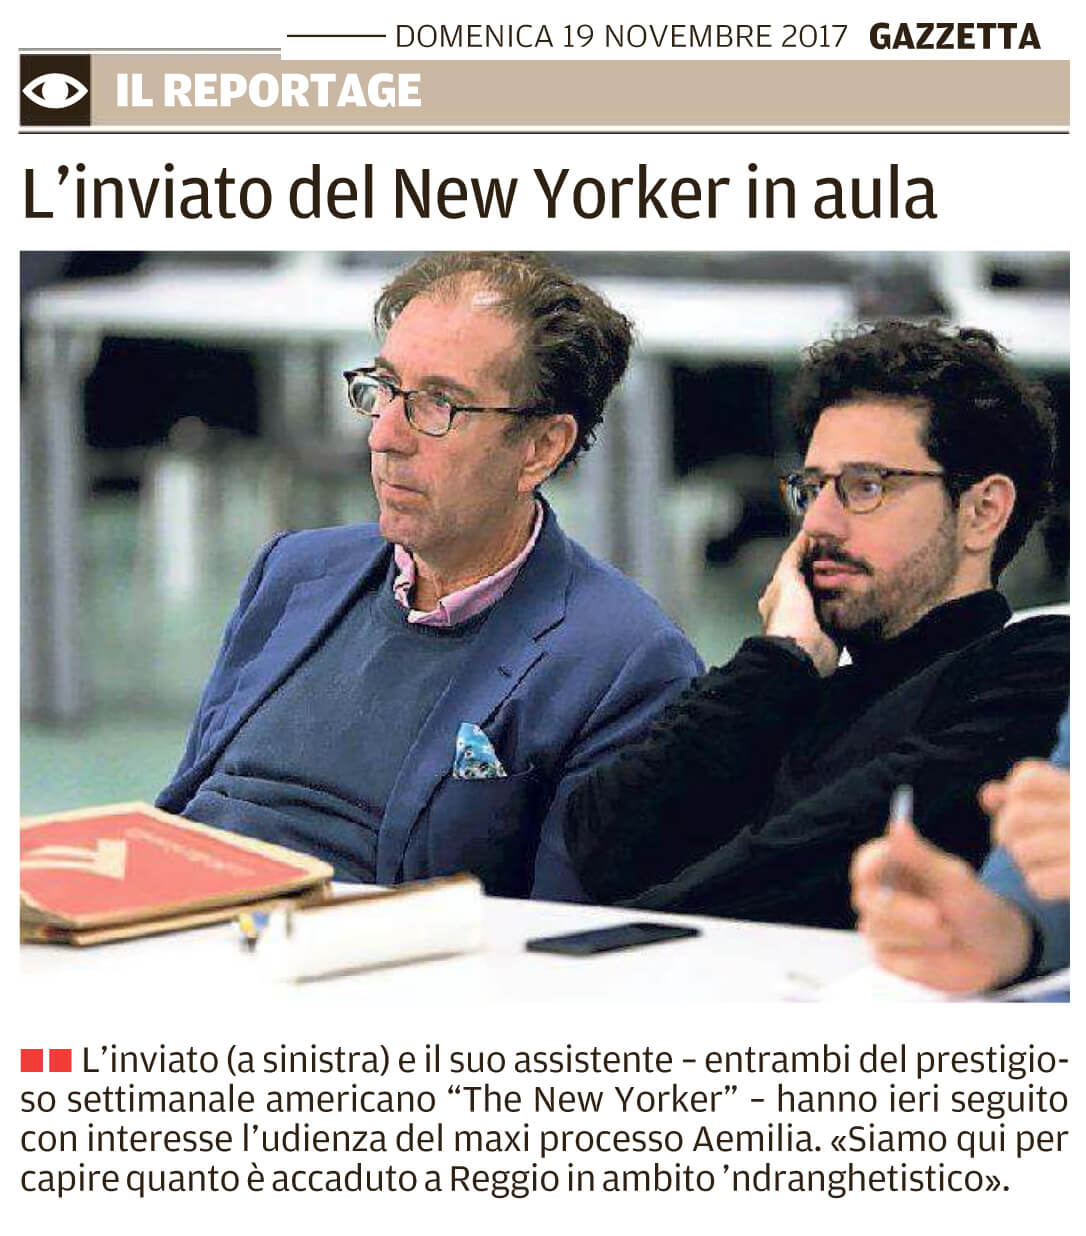 Il New Yorker in aula